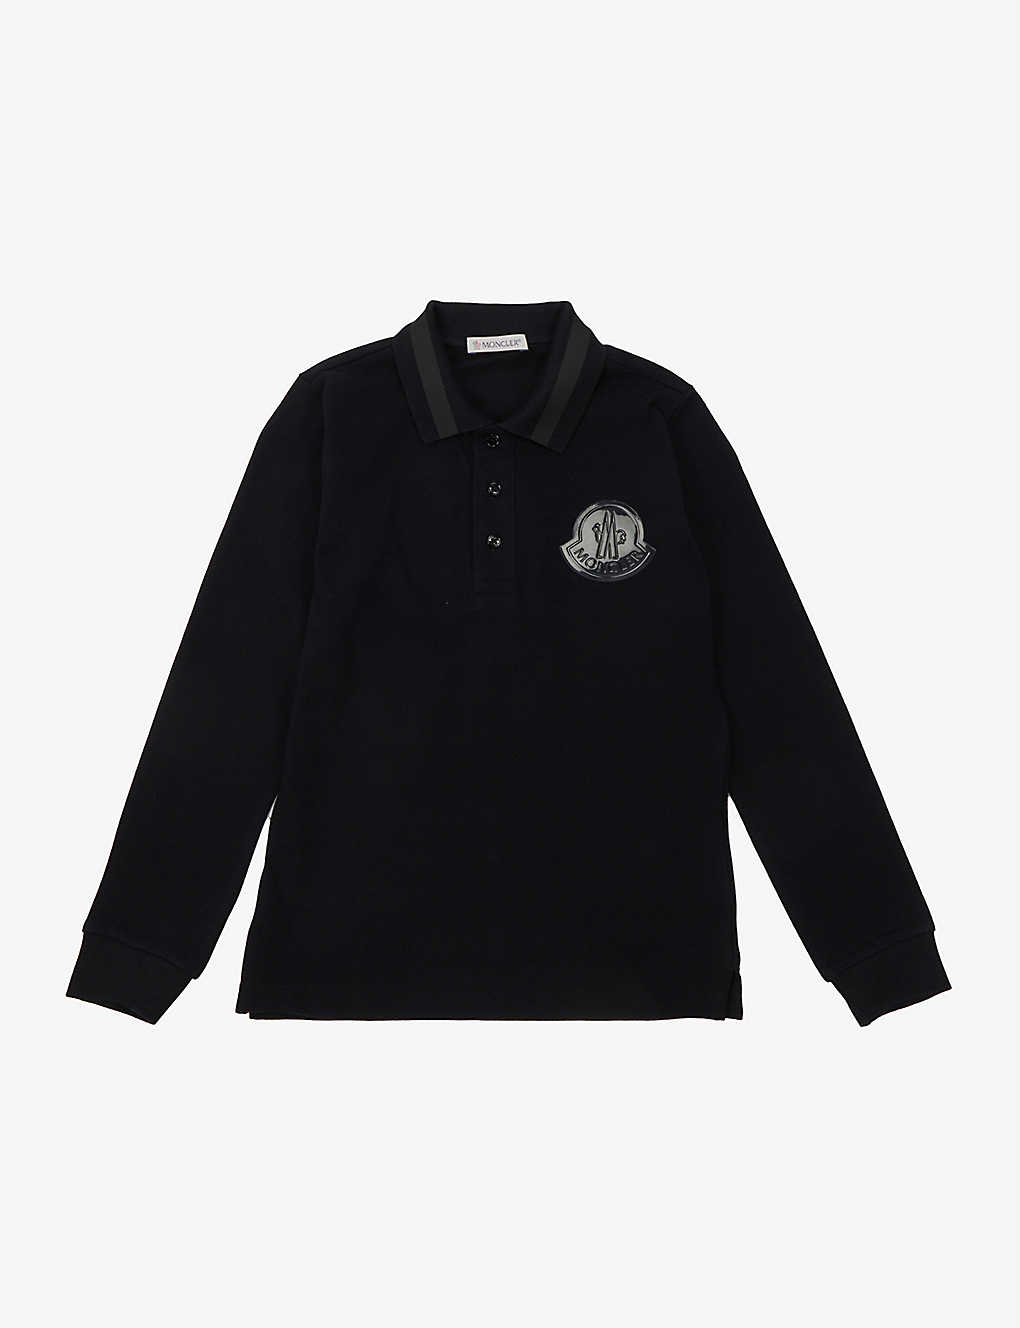 MONCLER:品牌标识棉质 Polo 衫 4-14 岁